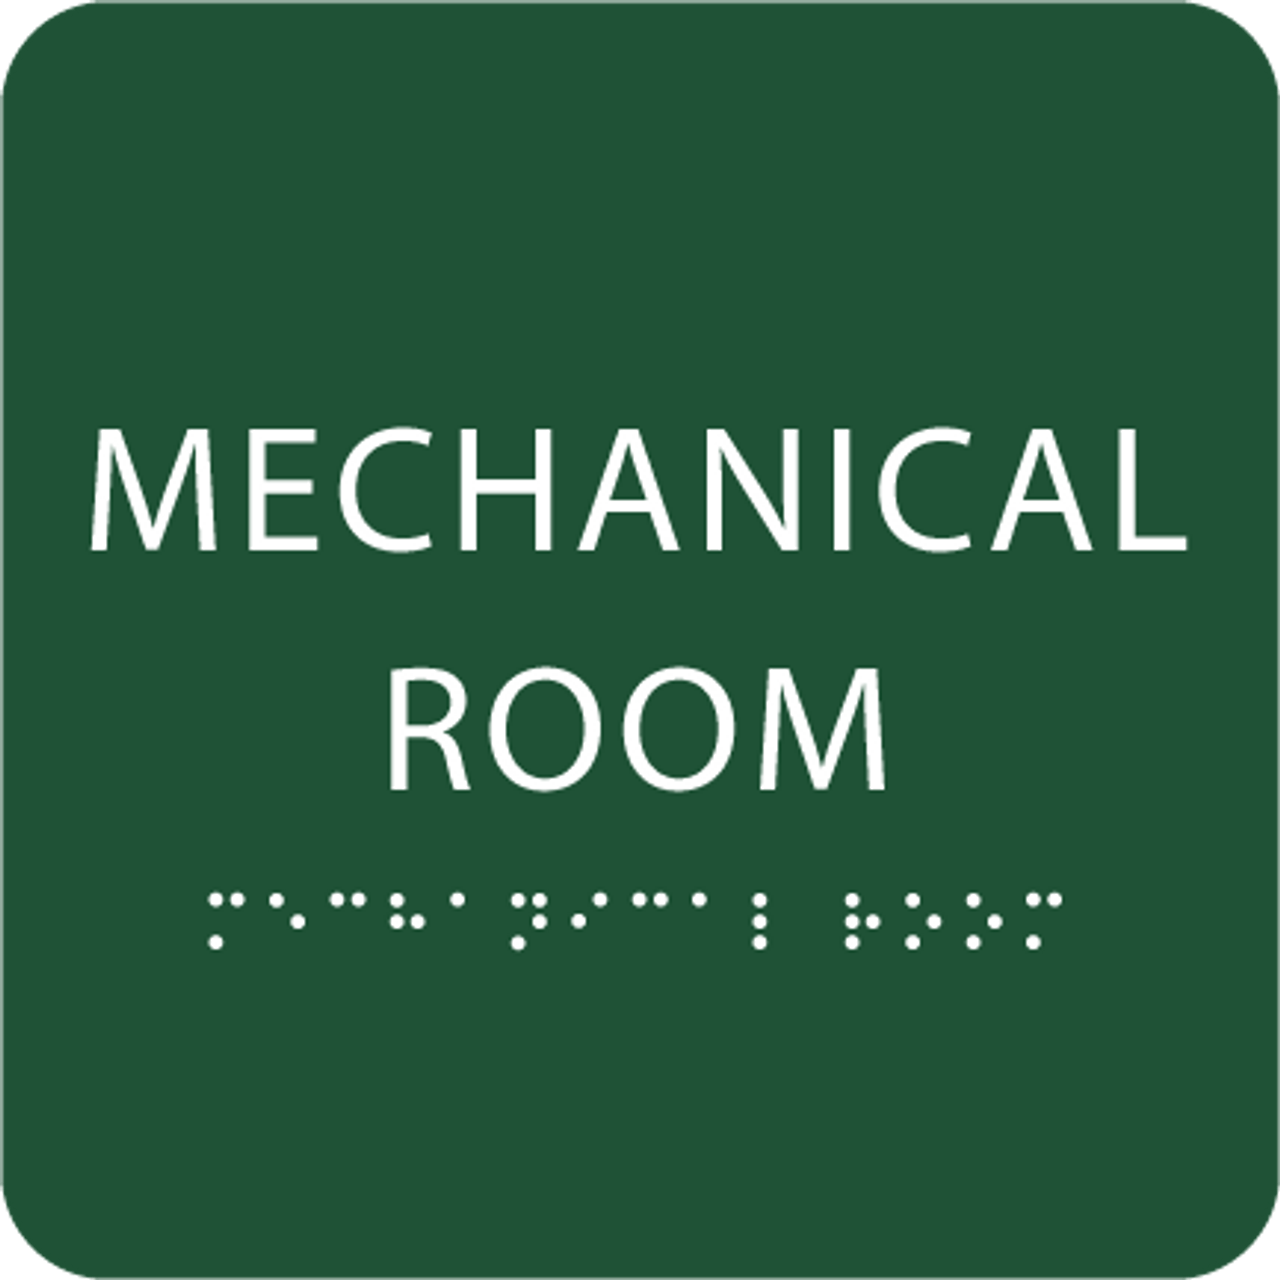 Green Tactile Mechanical Room Sign